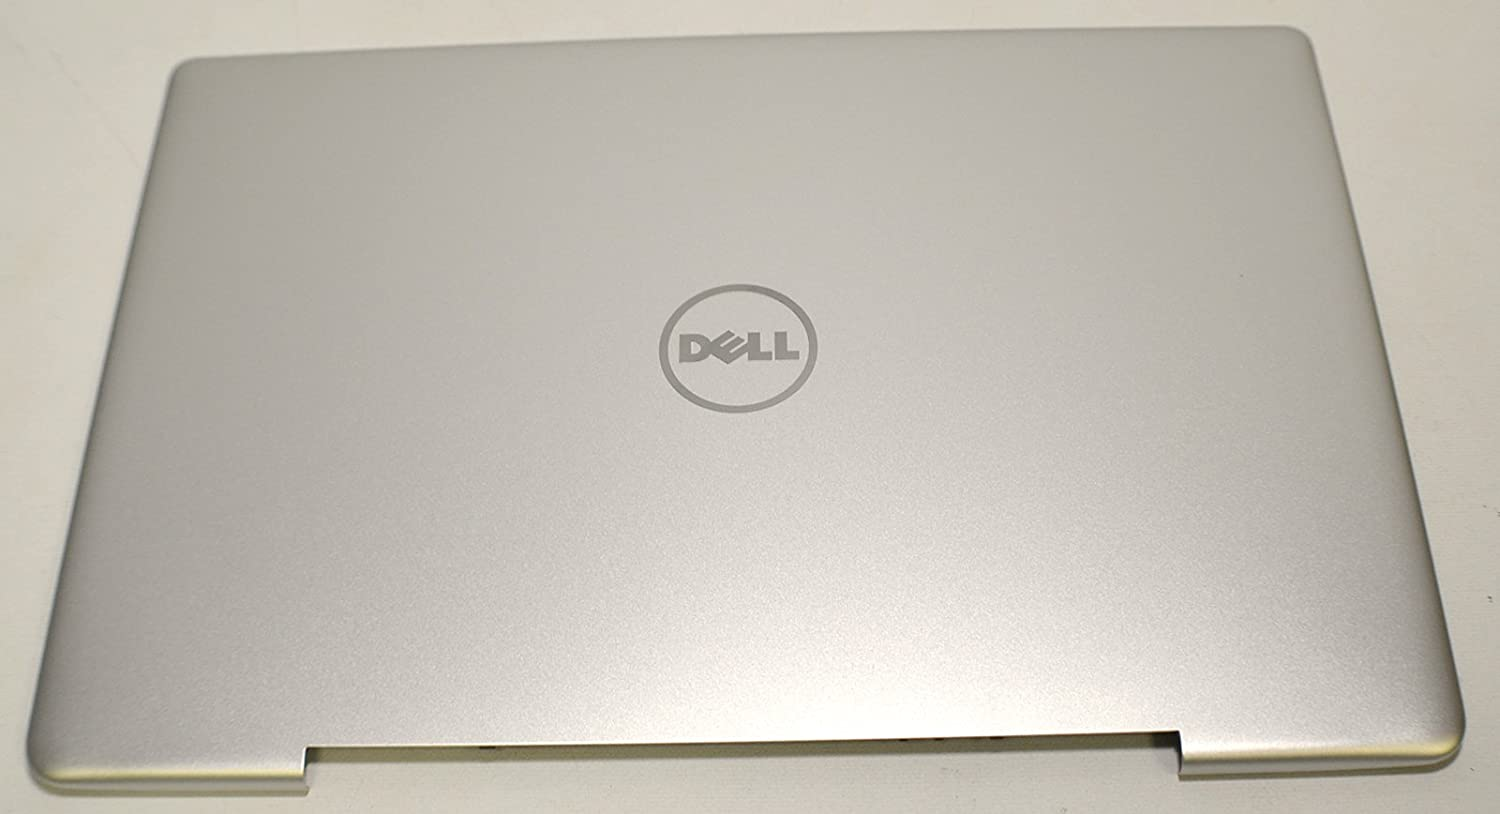 New OEM DELL XPS 14z L411z L412z LCD Screen Monitor Panel Housing Top Lid Back Cover Rear Panel Assembly WF79Y